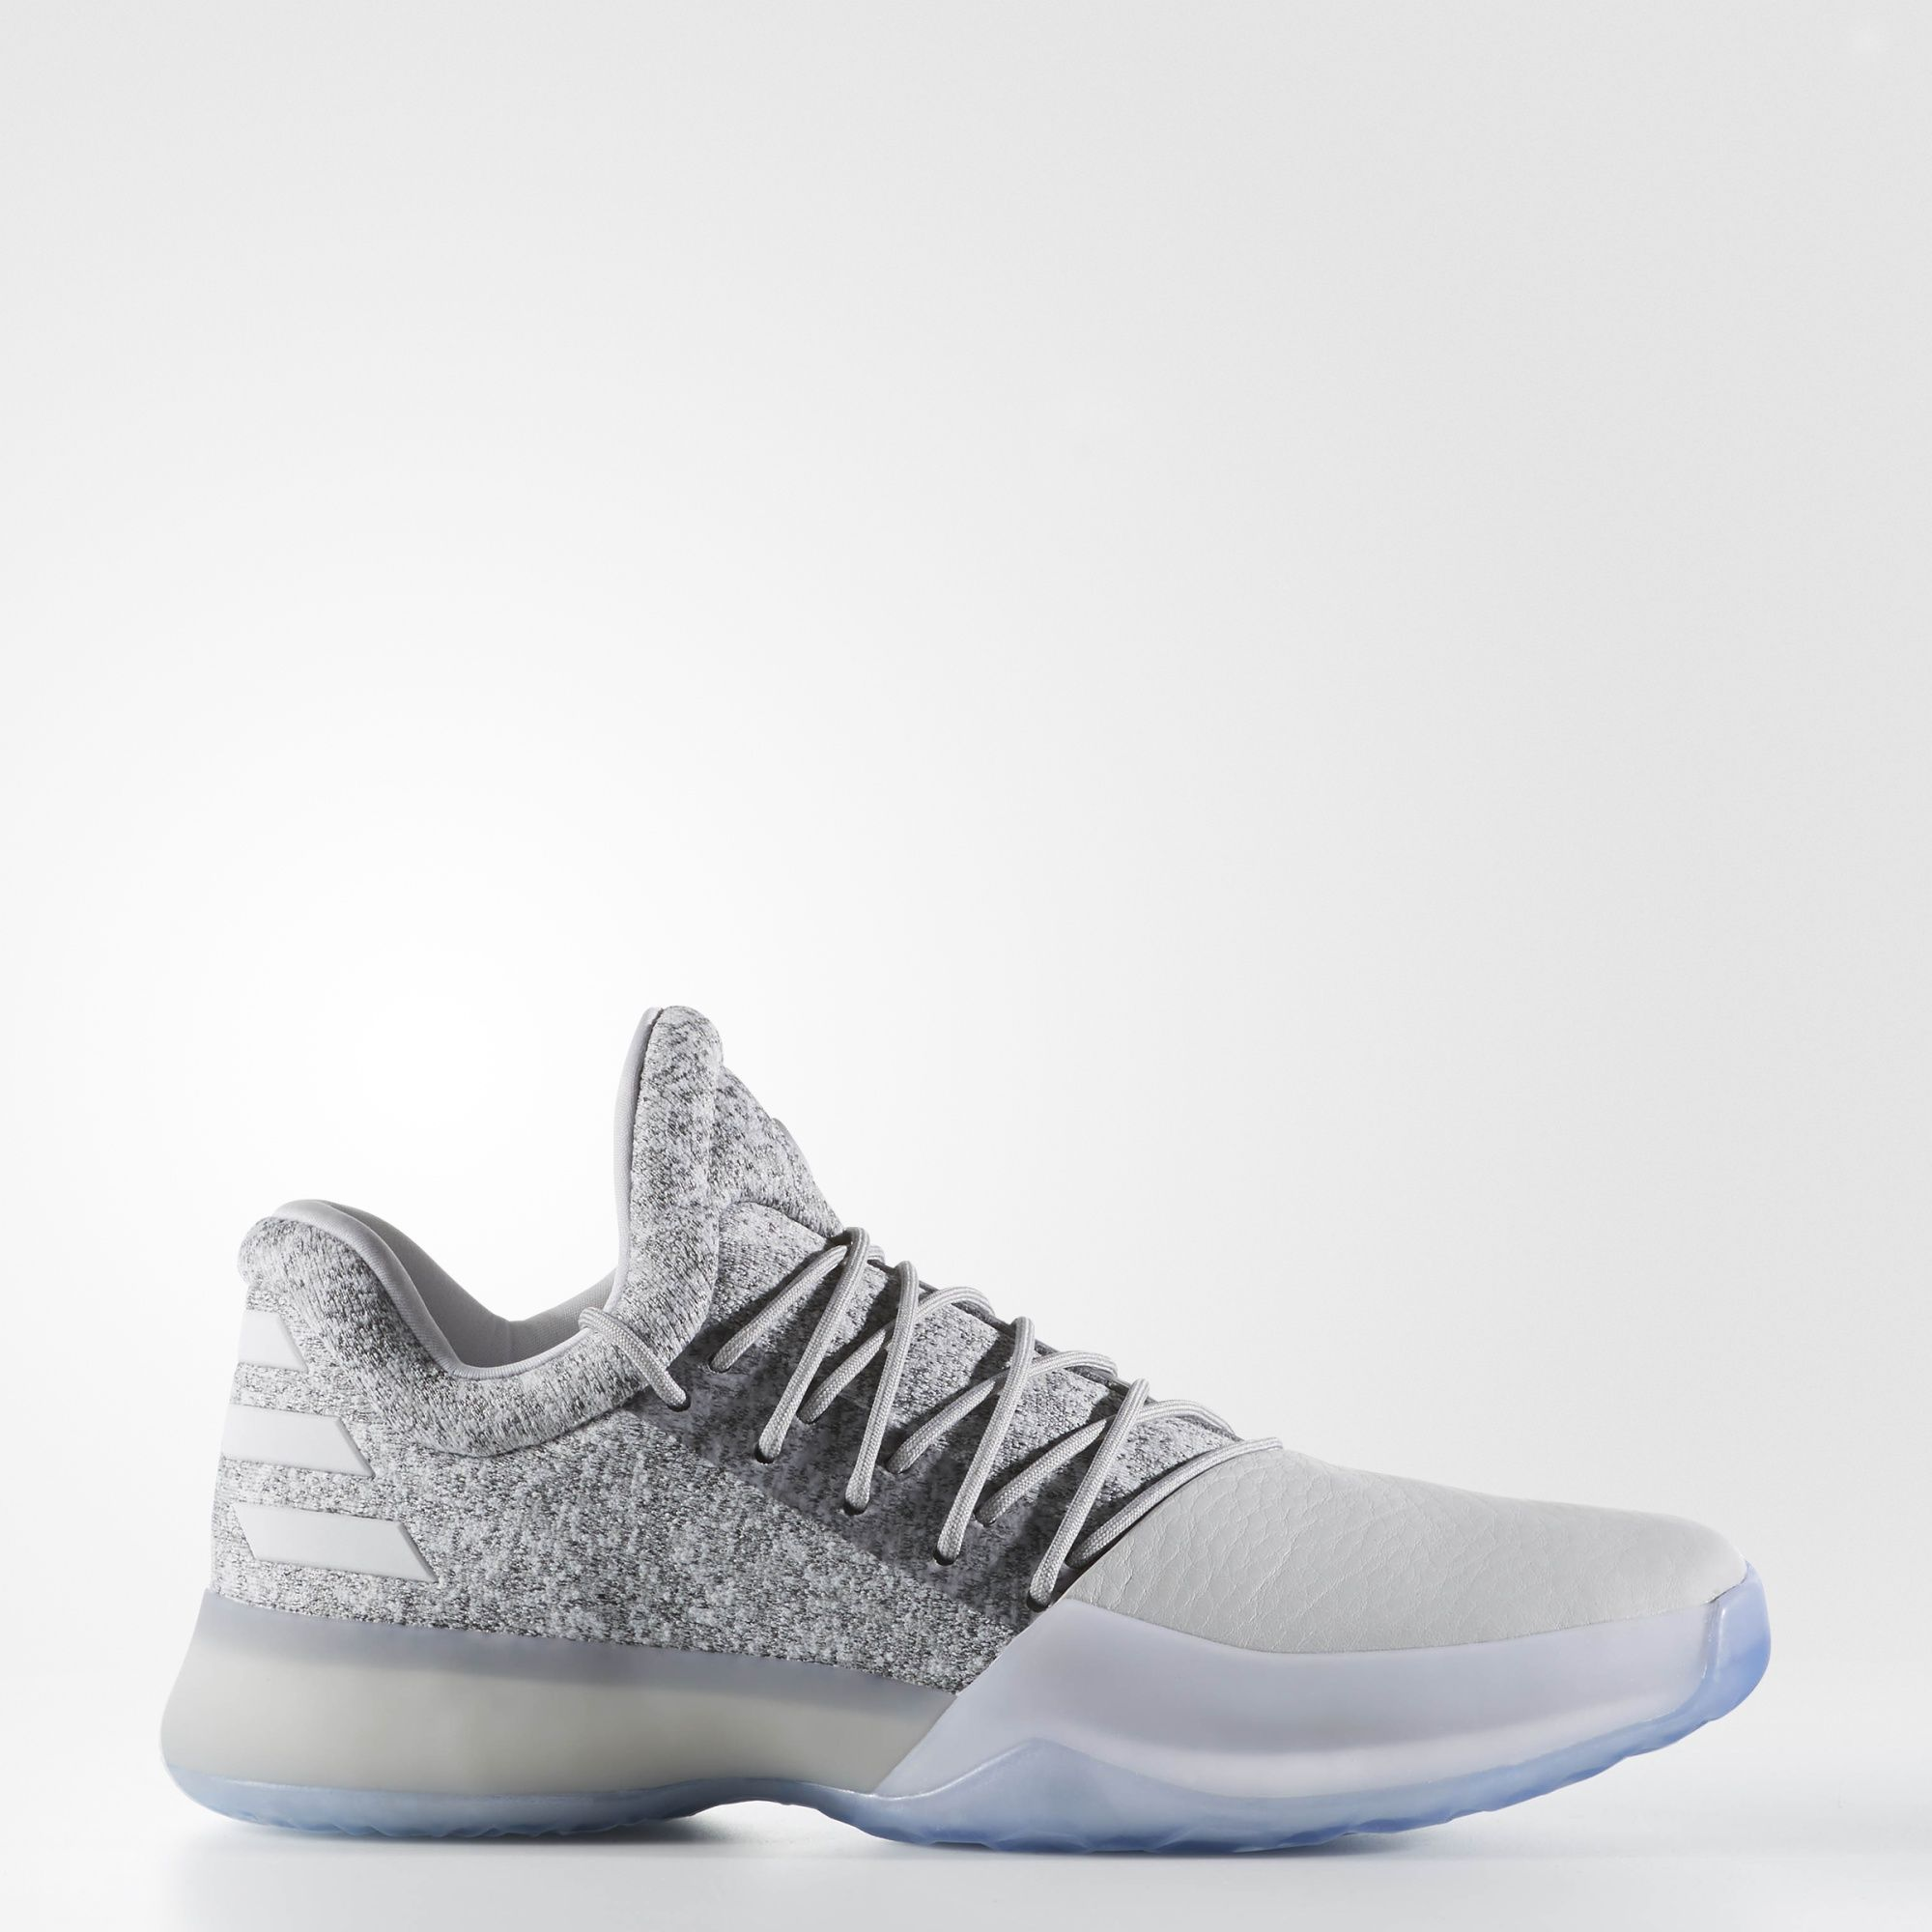 3f5d68946e8e adidas - Harden Vol. 1 Shoes